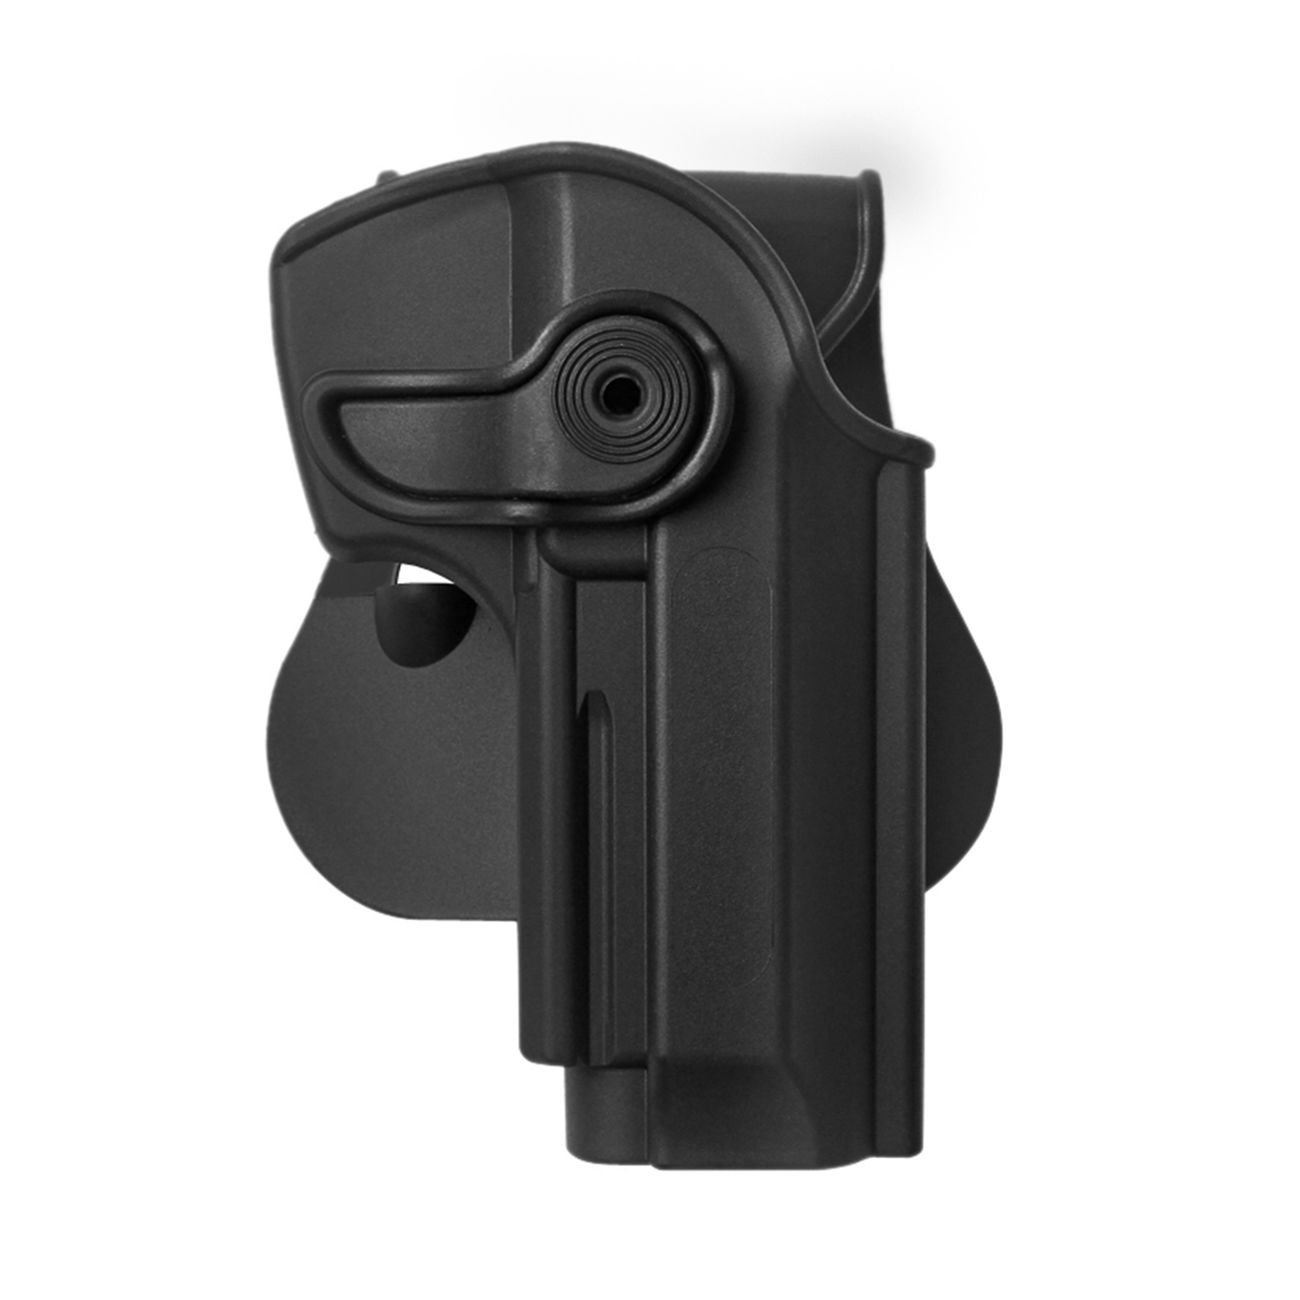 IMI Defense Level 2 Holster Kunststoff Paddle für PT 92 Modelle schwarz 0